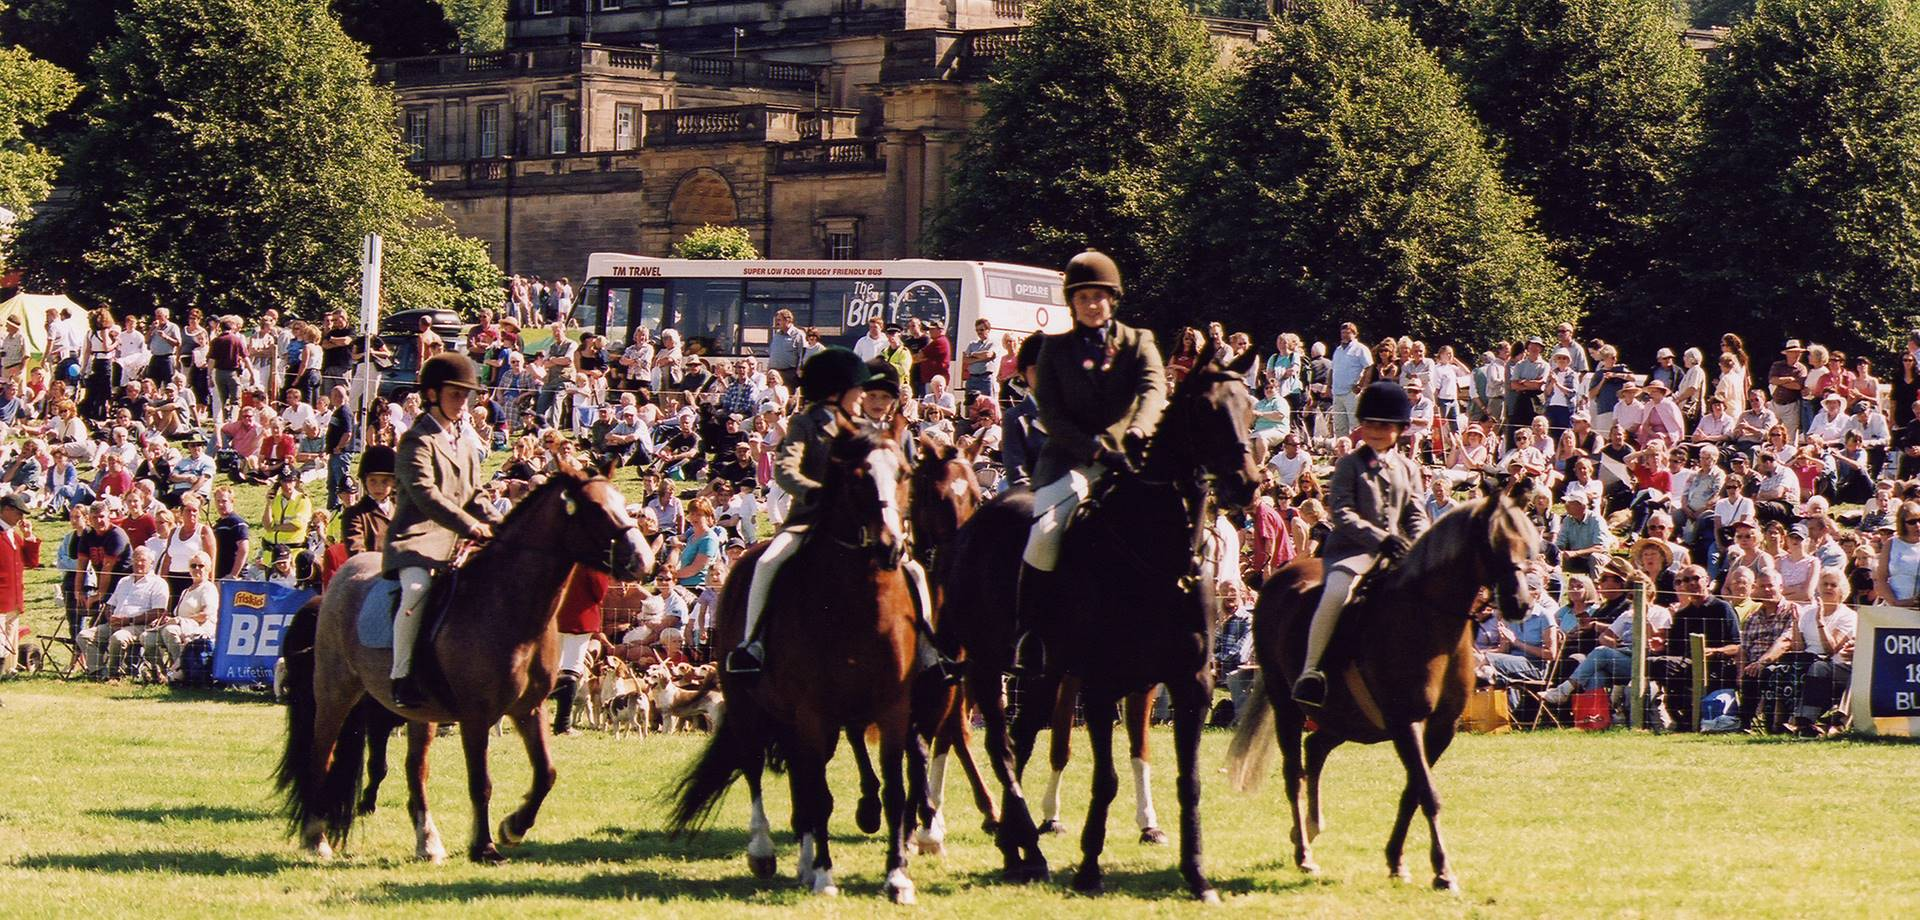 35 Years of Chatsworth Country Fair: Facts of the Fair Then and Now